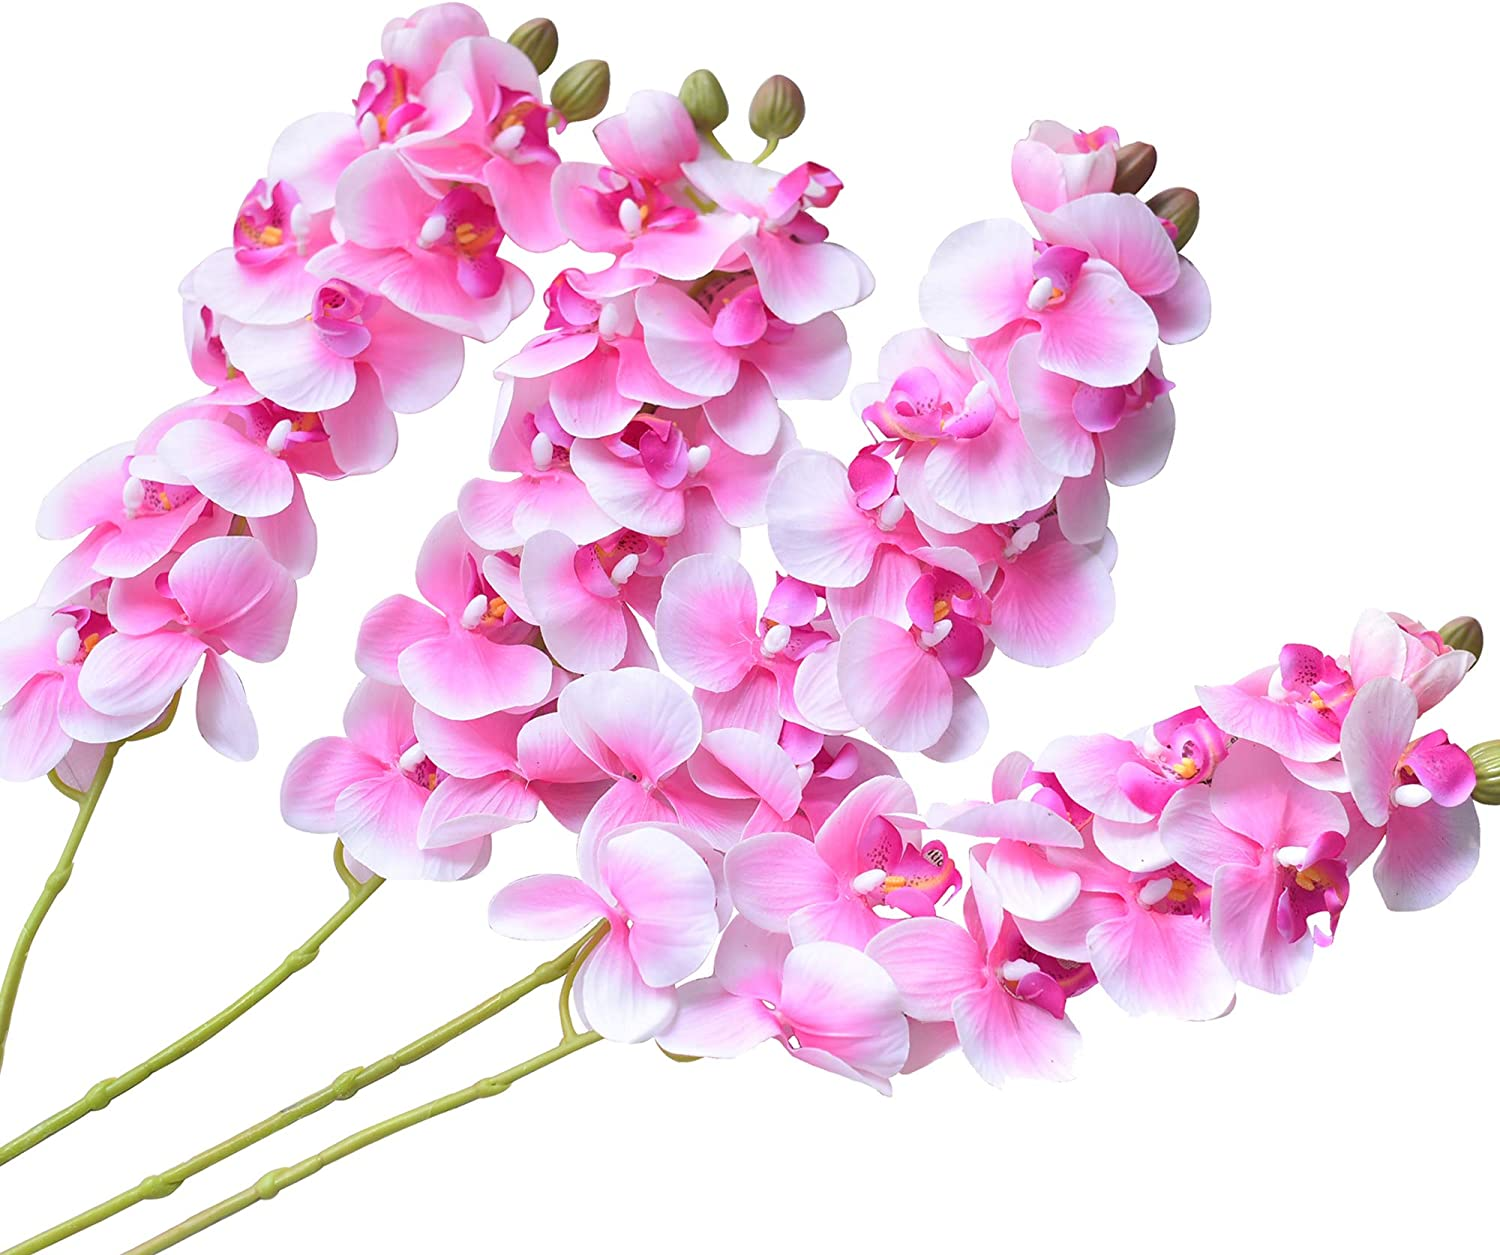 Amazon Com Ivalue 4pcs Artificial Orchid Stems Real Touch Phalaenopsis Orchids Flowers Pink Fake Flower Branches 28 For Home Arrangement 4 Light Pink Orchid Home Kitchen